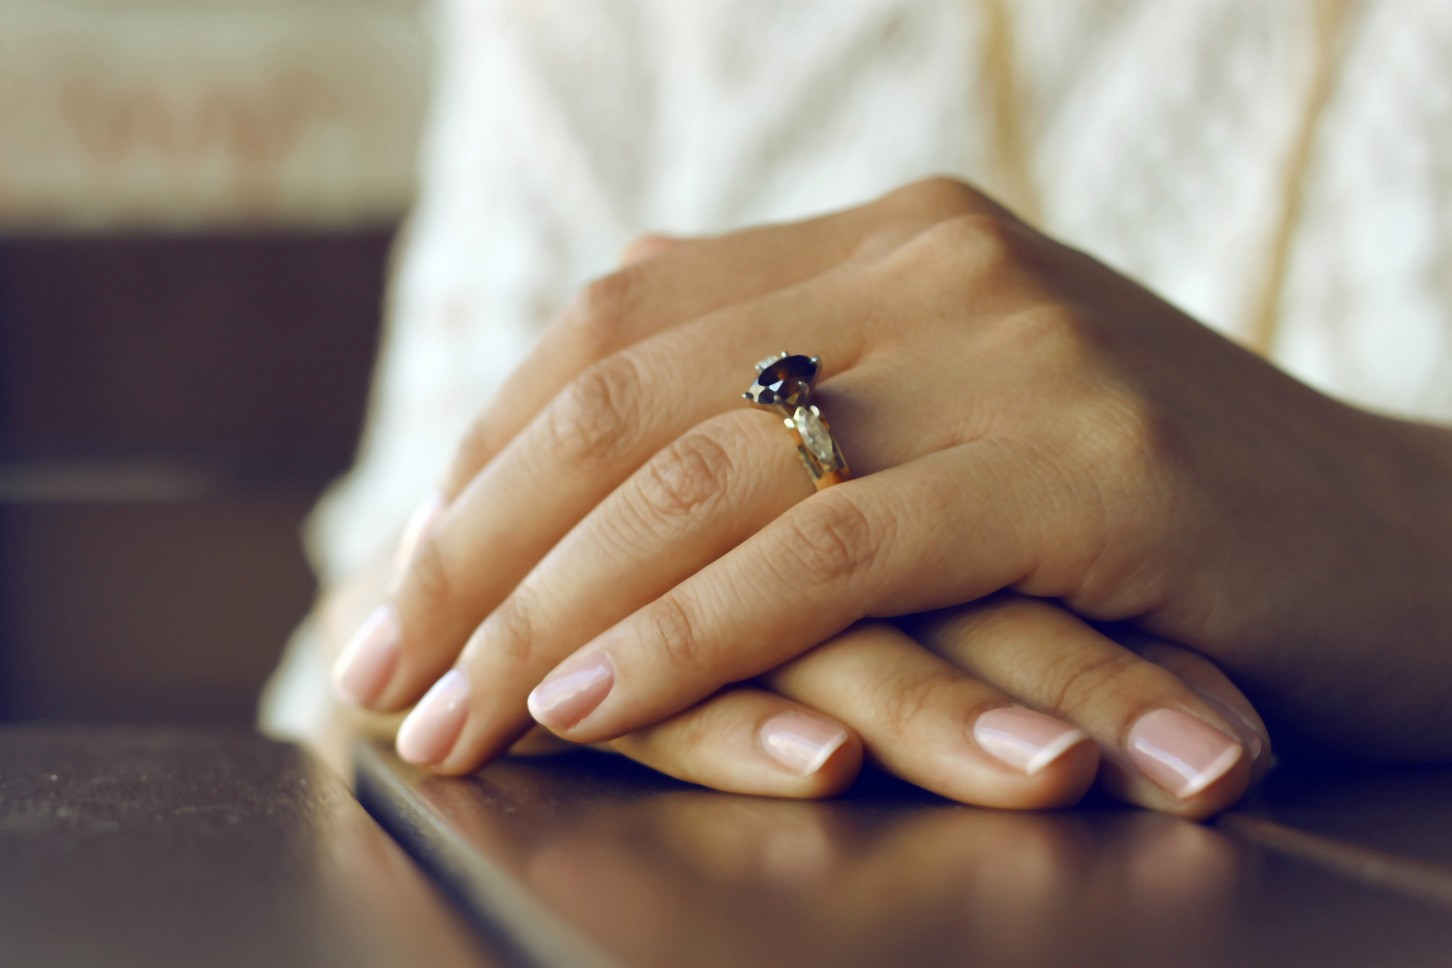 two hands folded over one another, with neatly manicured nails.